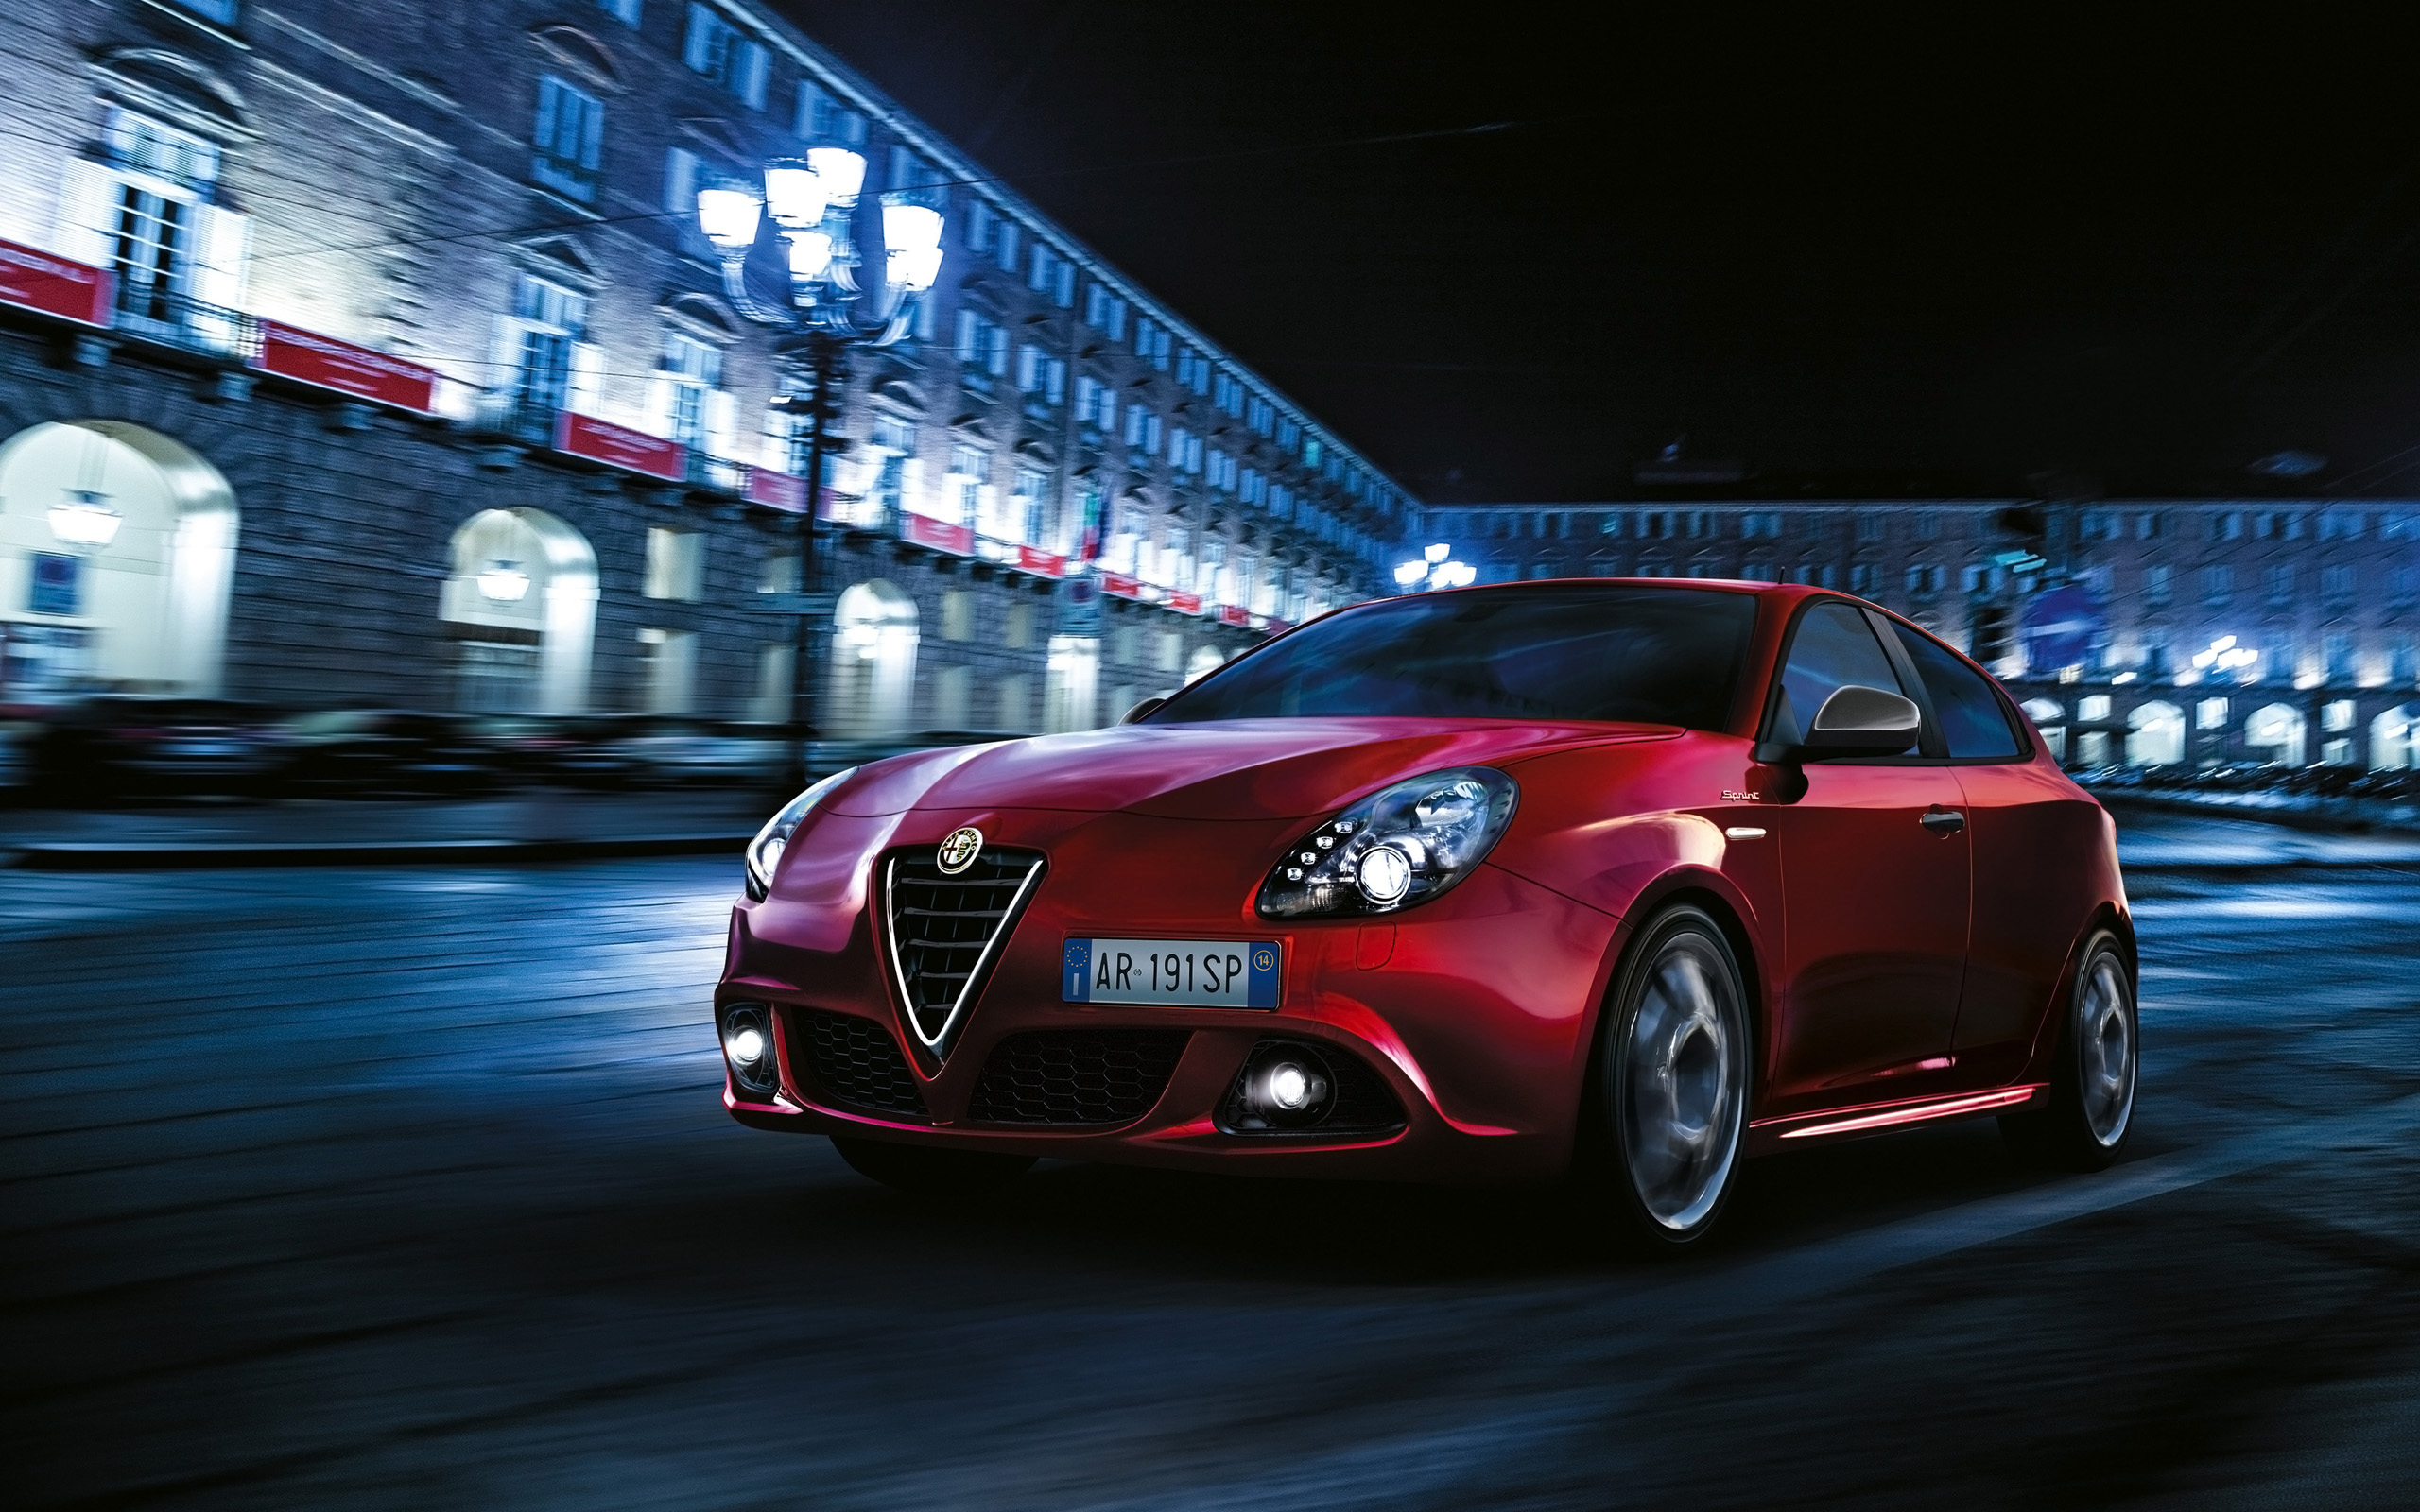 2015 Alfa Romeo Giulietta Sprint Wallpaper Hd Car